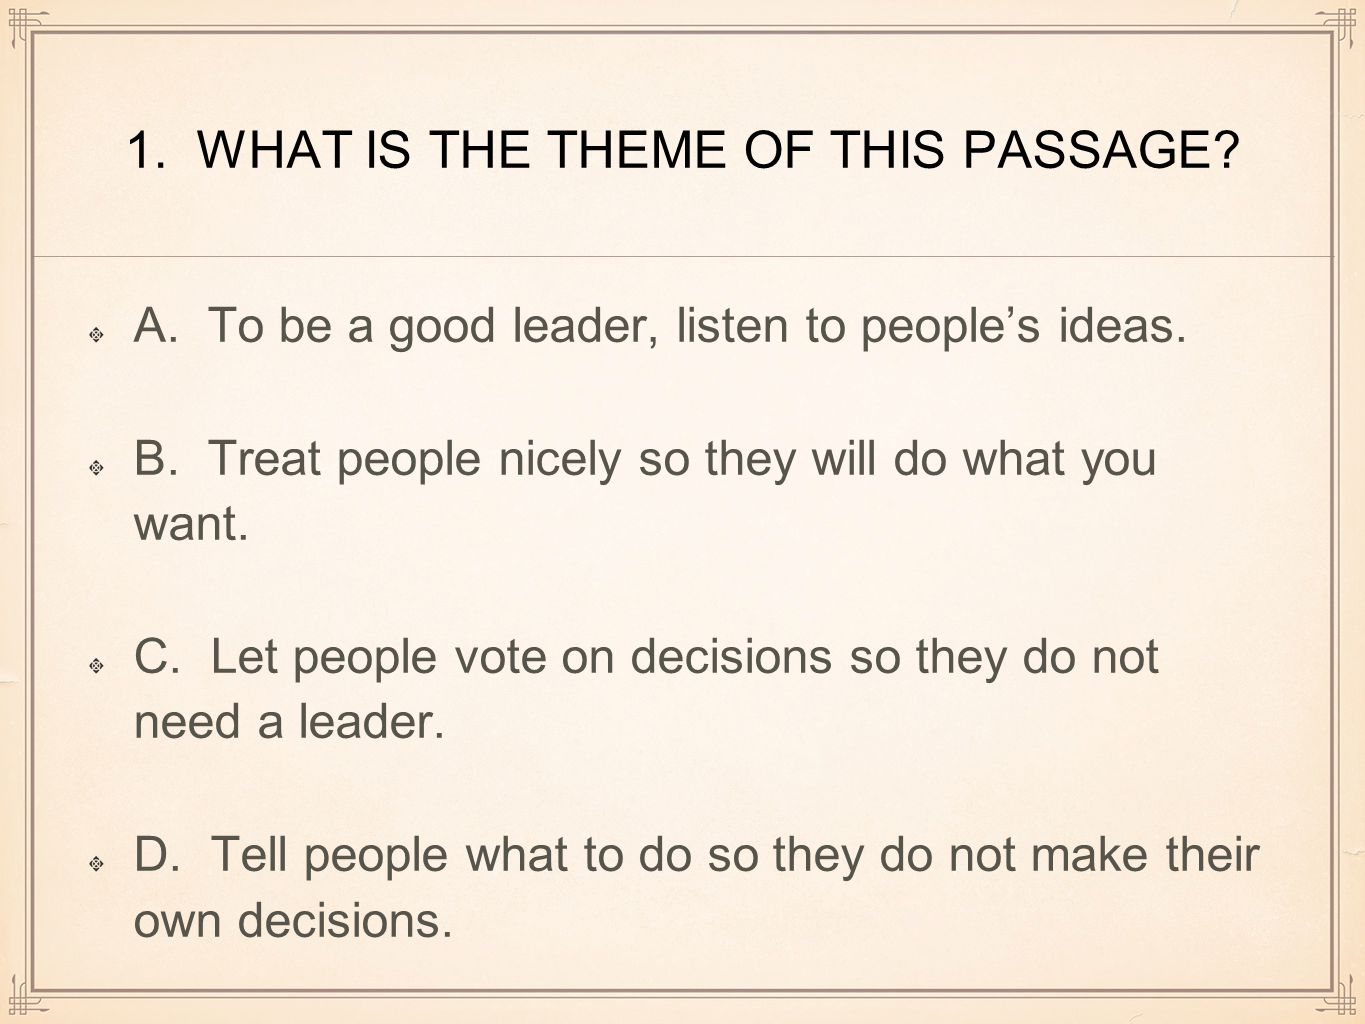 1. WHAT IS THE THEME OF THIS PASSAGE? A. To be a good leader, listen to people's ideas. B. Treat people nicely so they will do what you want. C. Let p